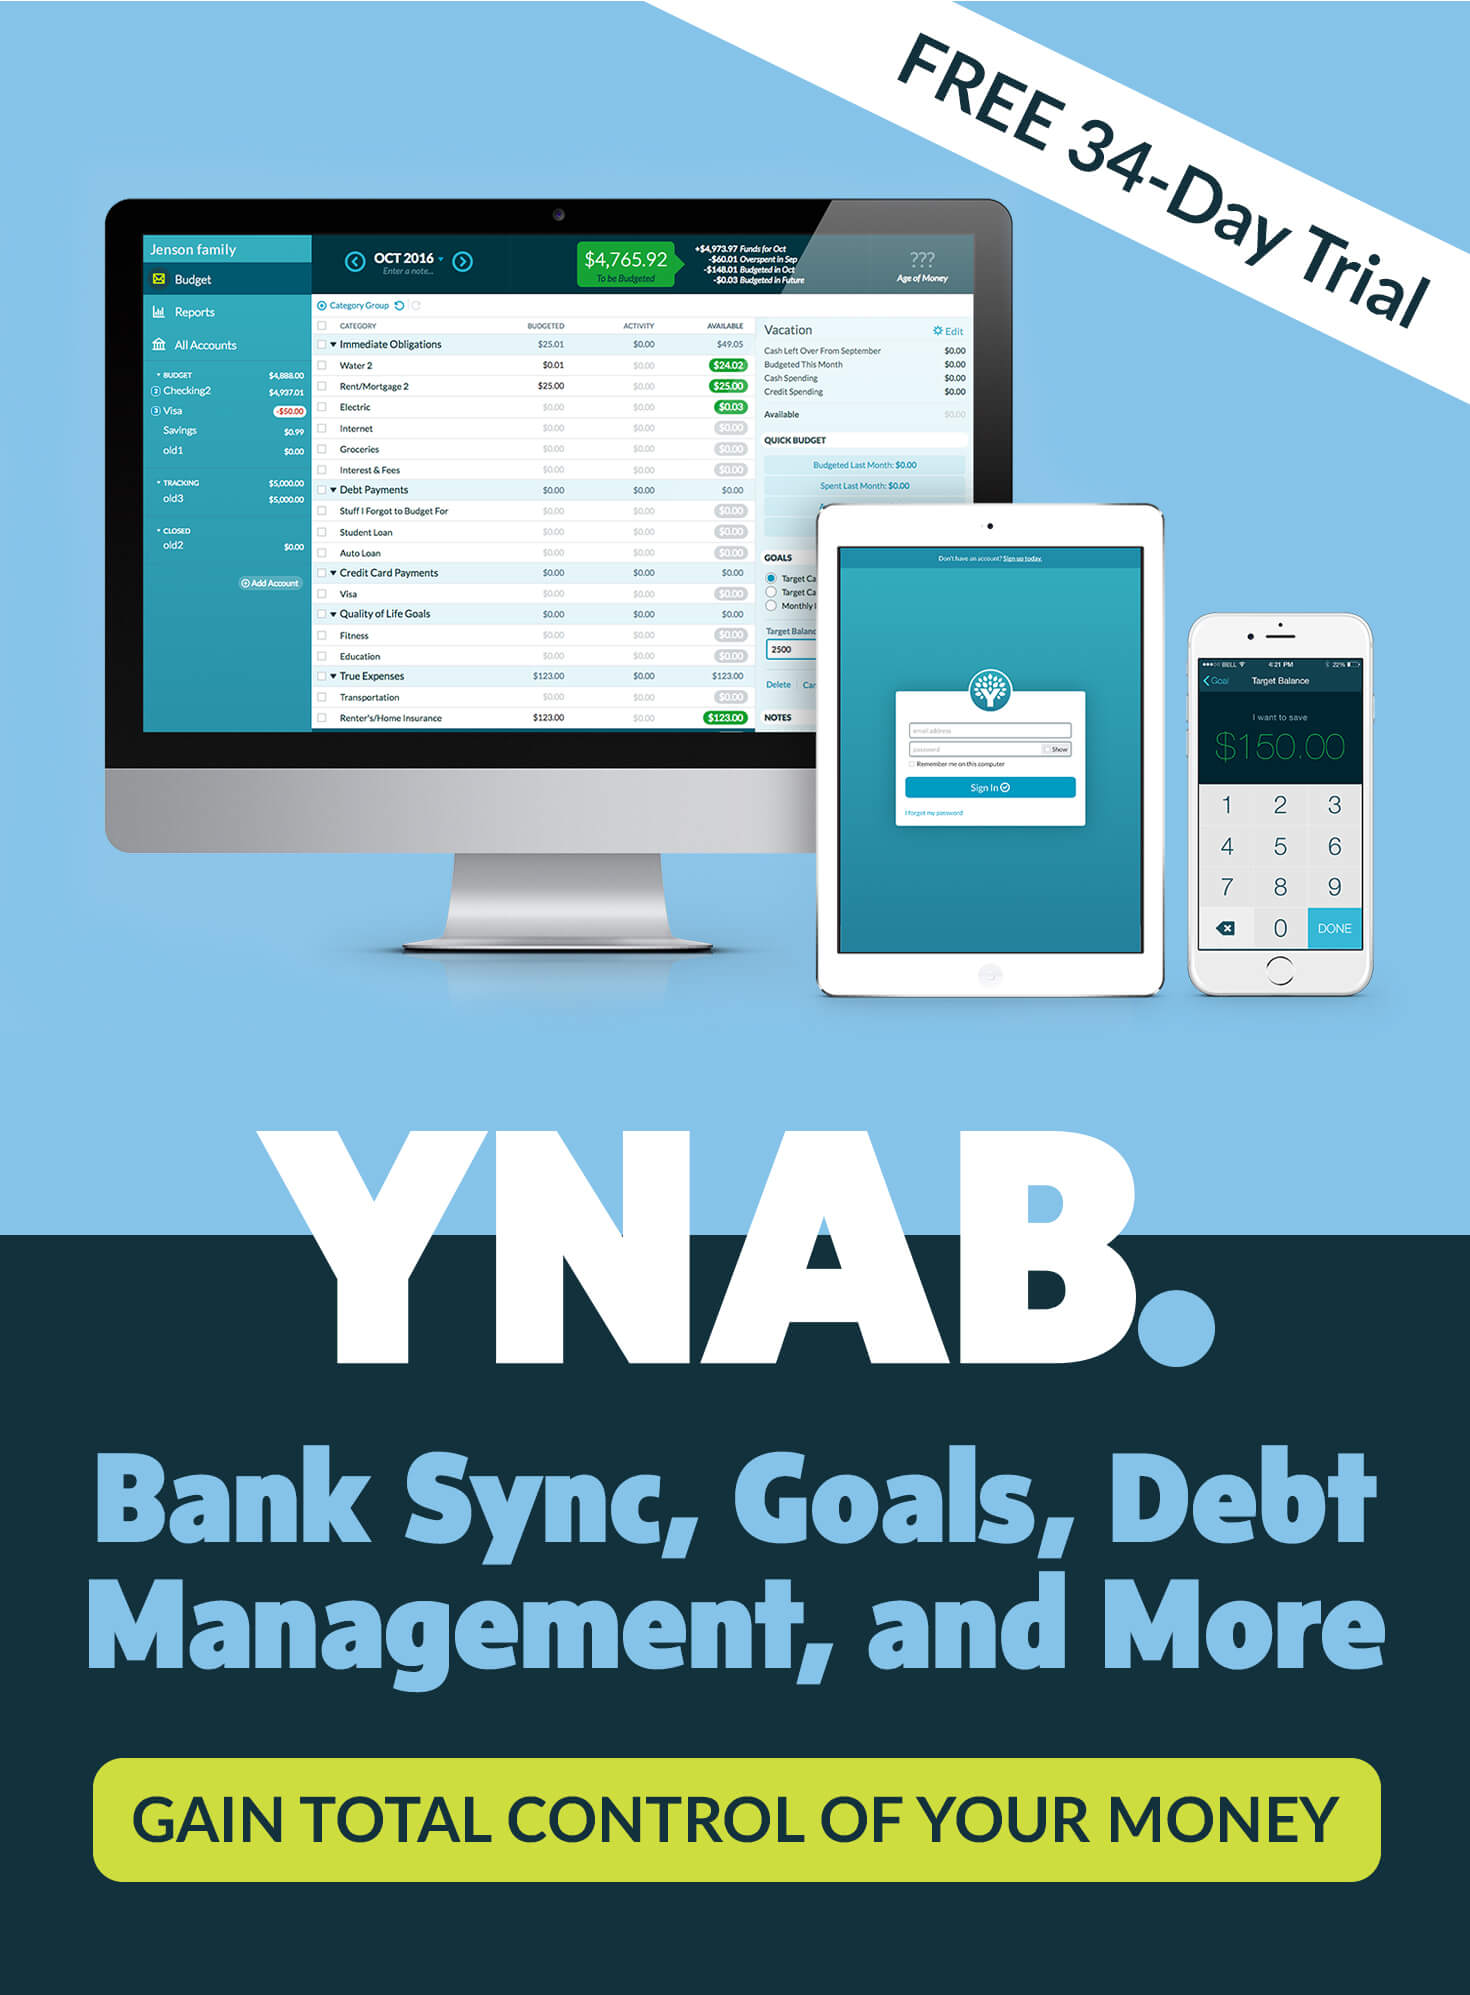 YNAB. Bank Sync, Goals, Debt Management, and More. Gain Total Control of Your Money